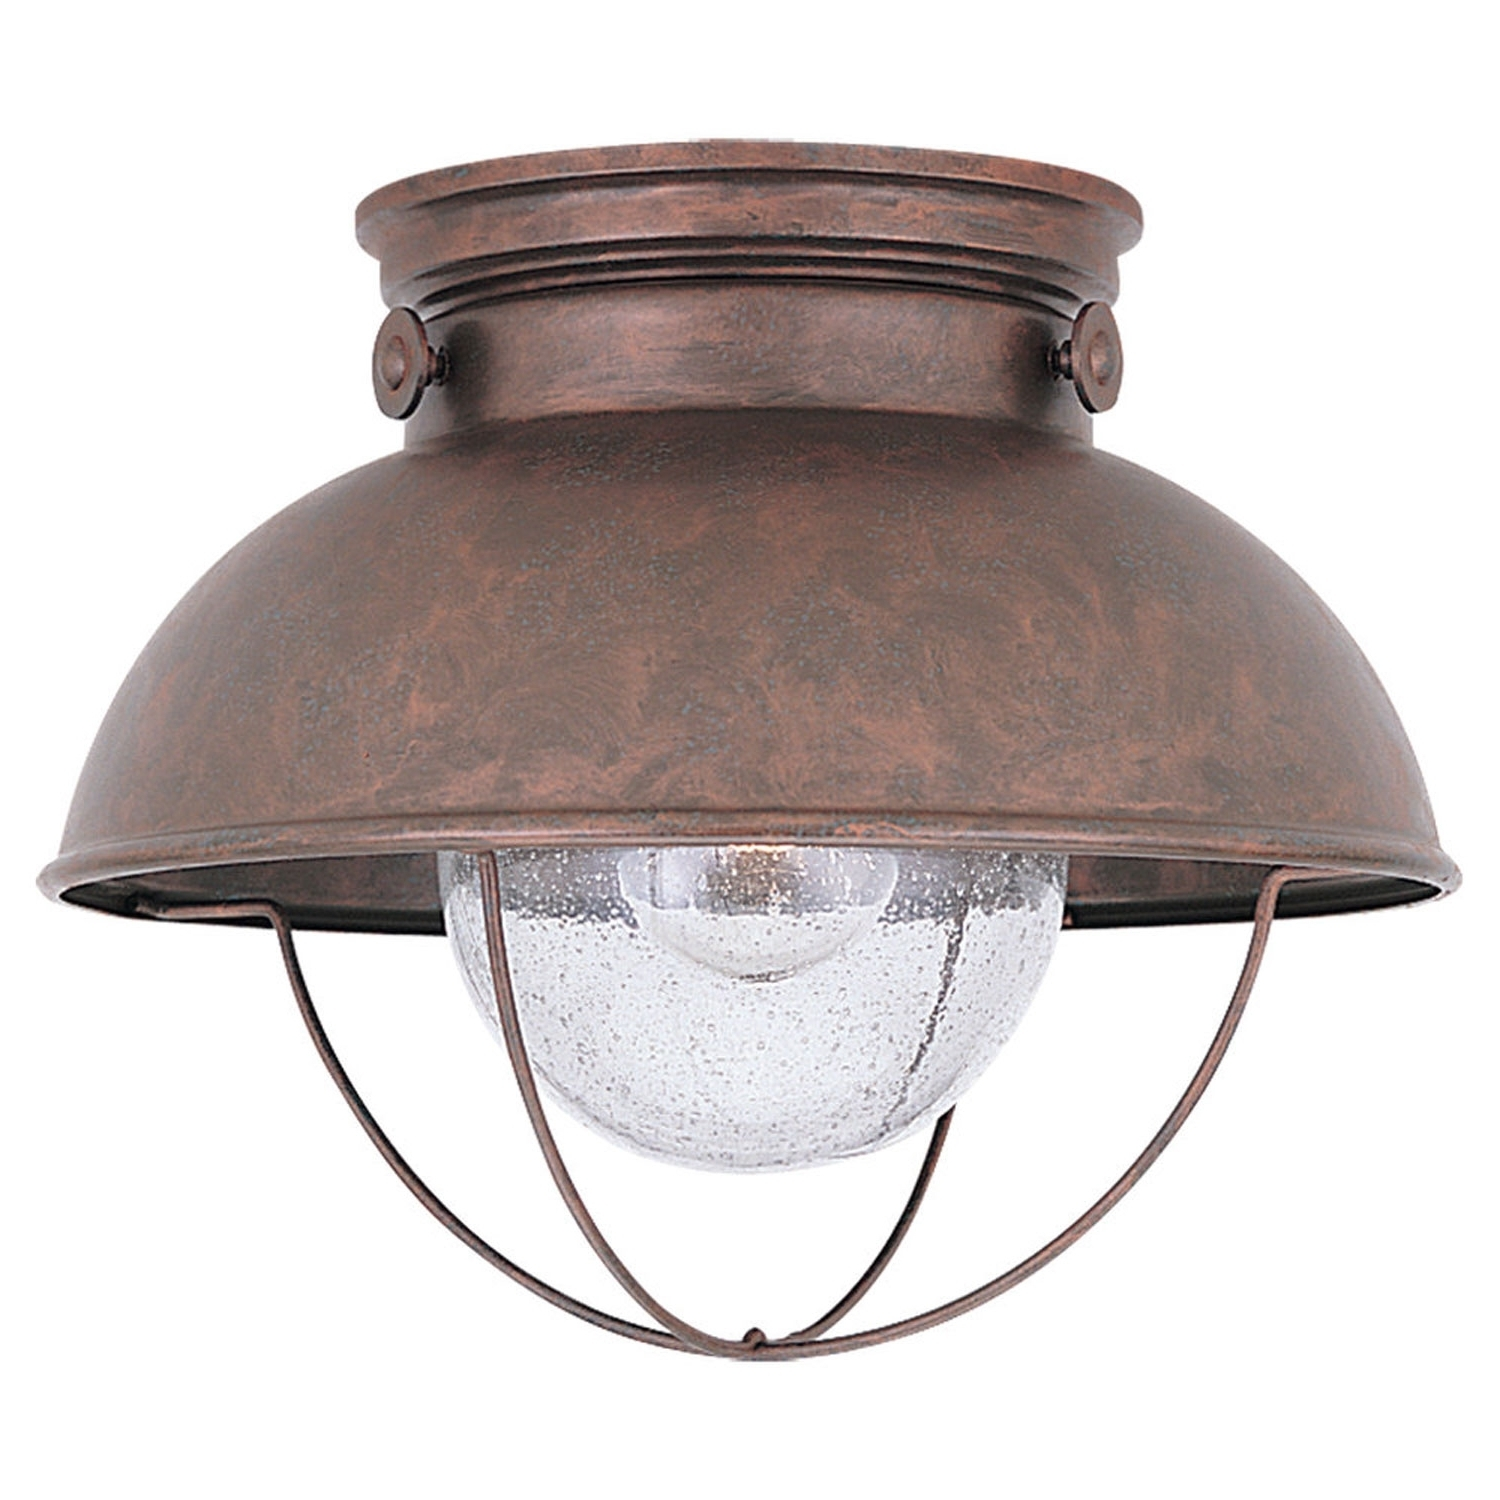 Round Black Finish Motion Sensor Outdoor Ceiling Light • Outdoor Pertaining To Famous Outdoor Ceiling Sensor Lights (Gallery 12 of 20)